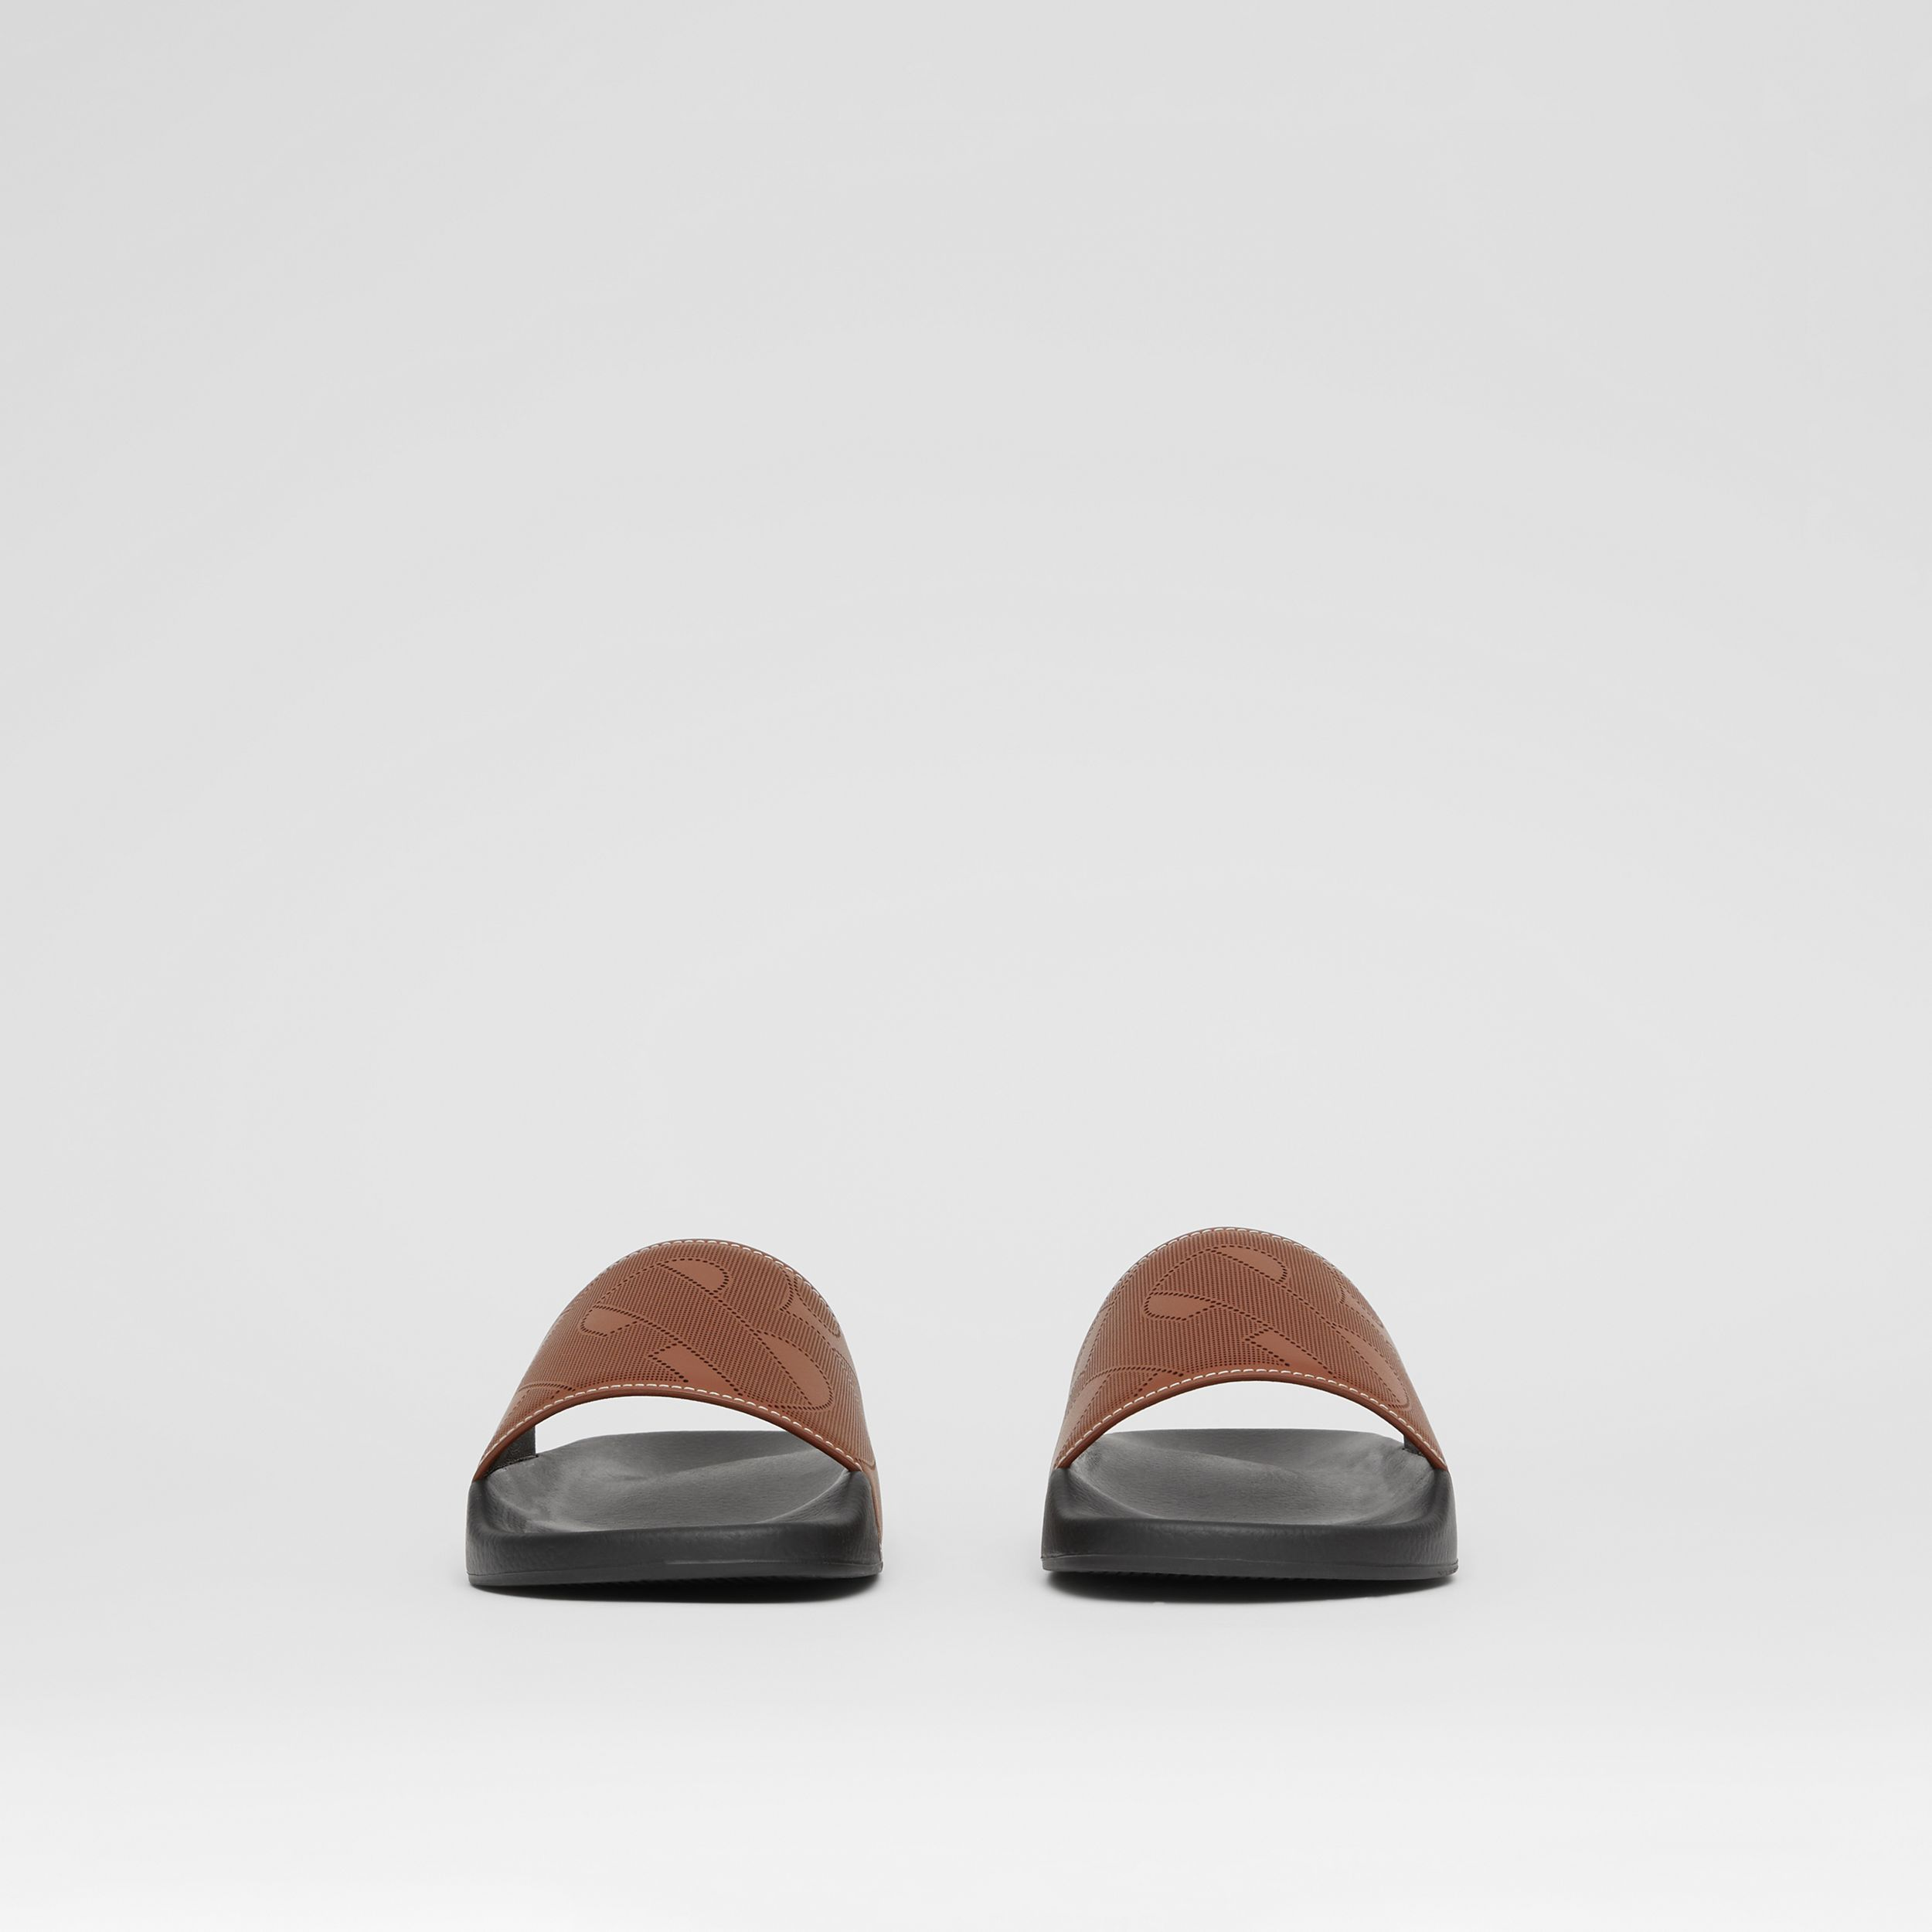 Perforated Monogram Leather Slides in Tan - Men | Burberry - 3